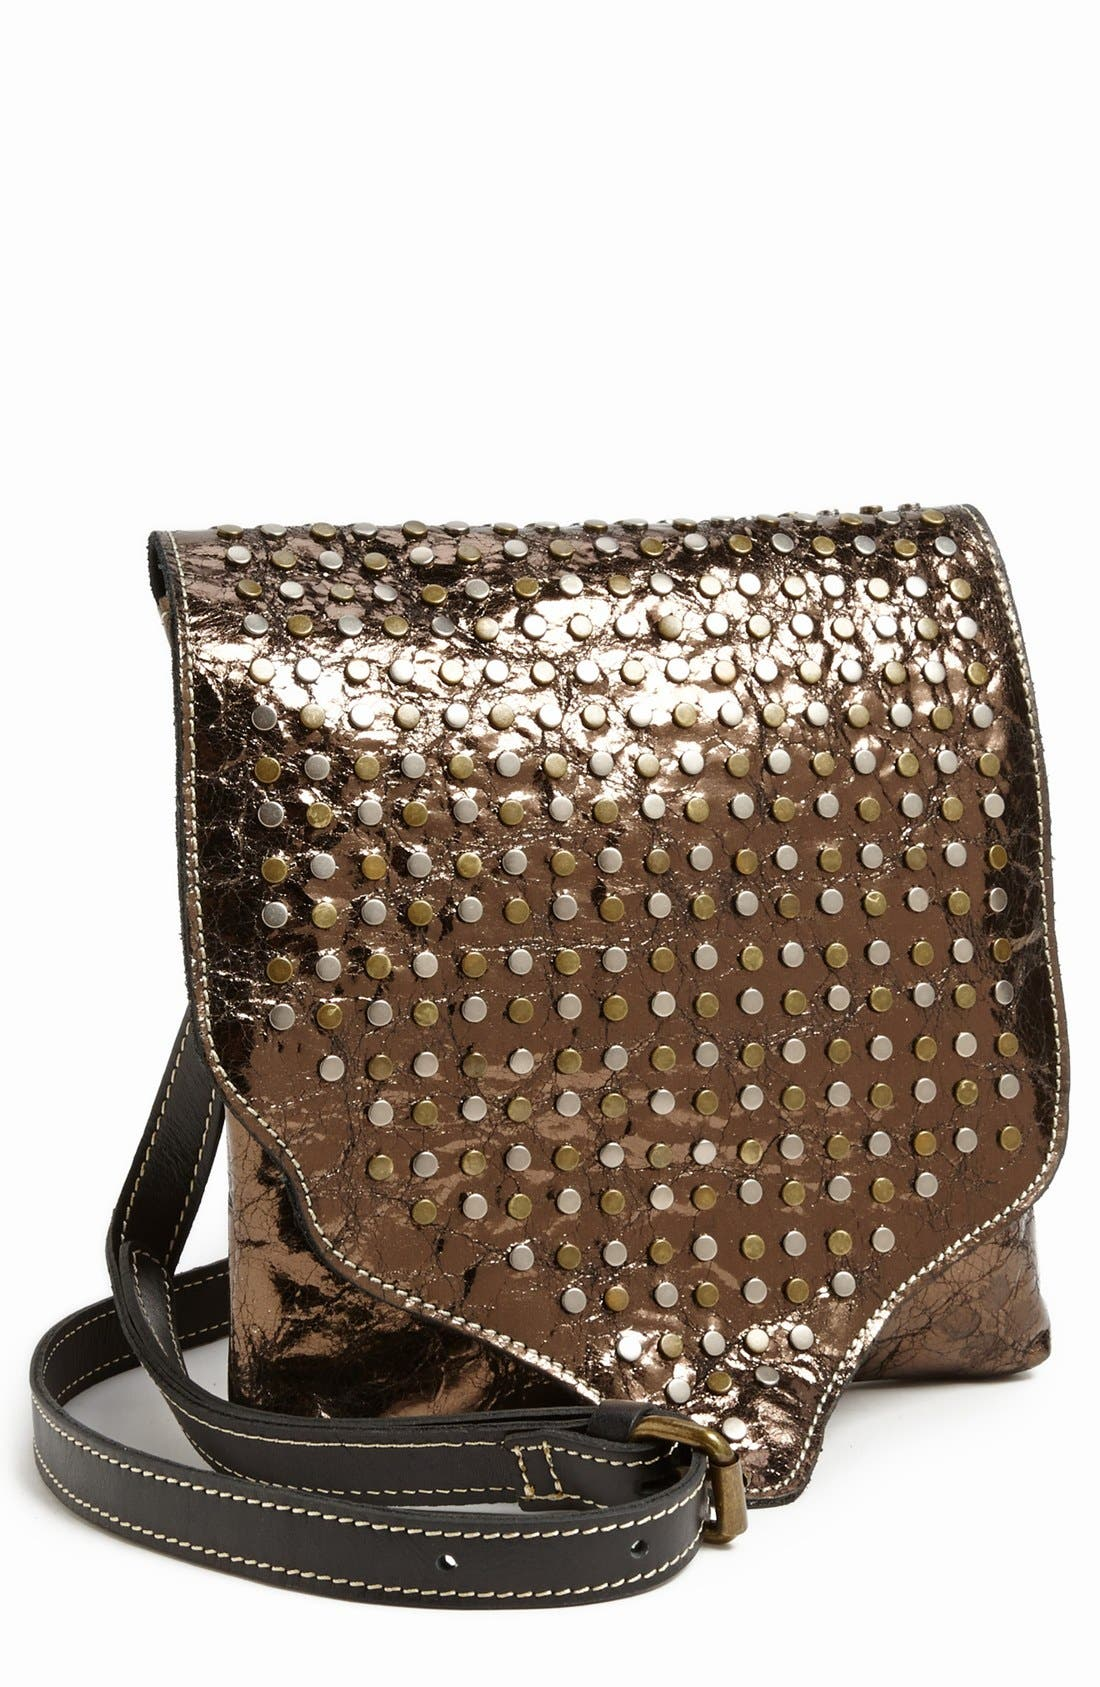 Alternate Image 1 Selected - Patricia Nash 'Granada' Crossbody Bag